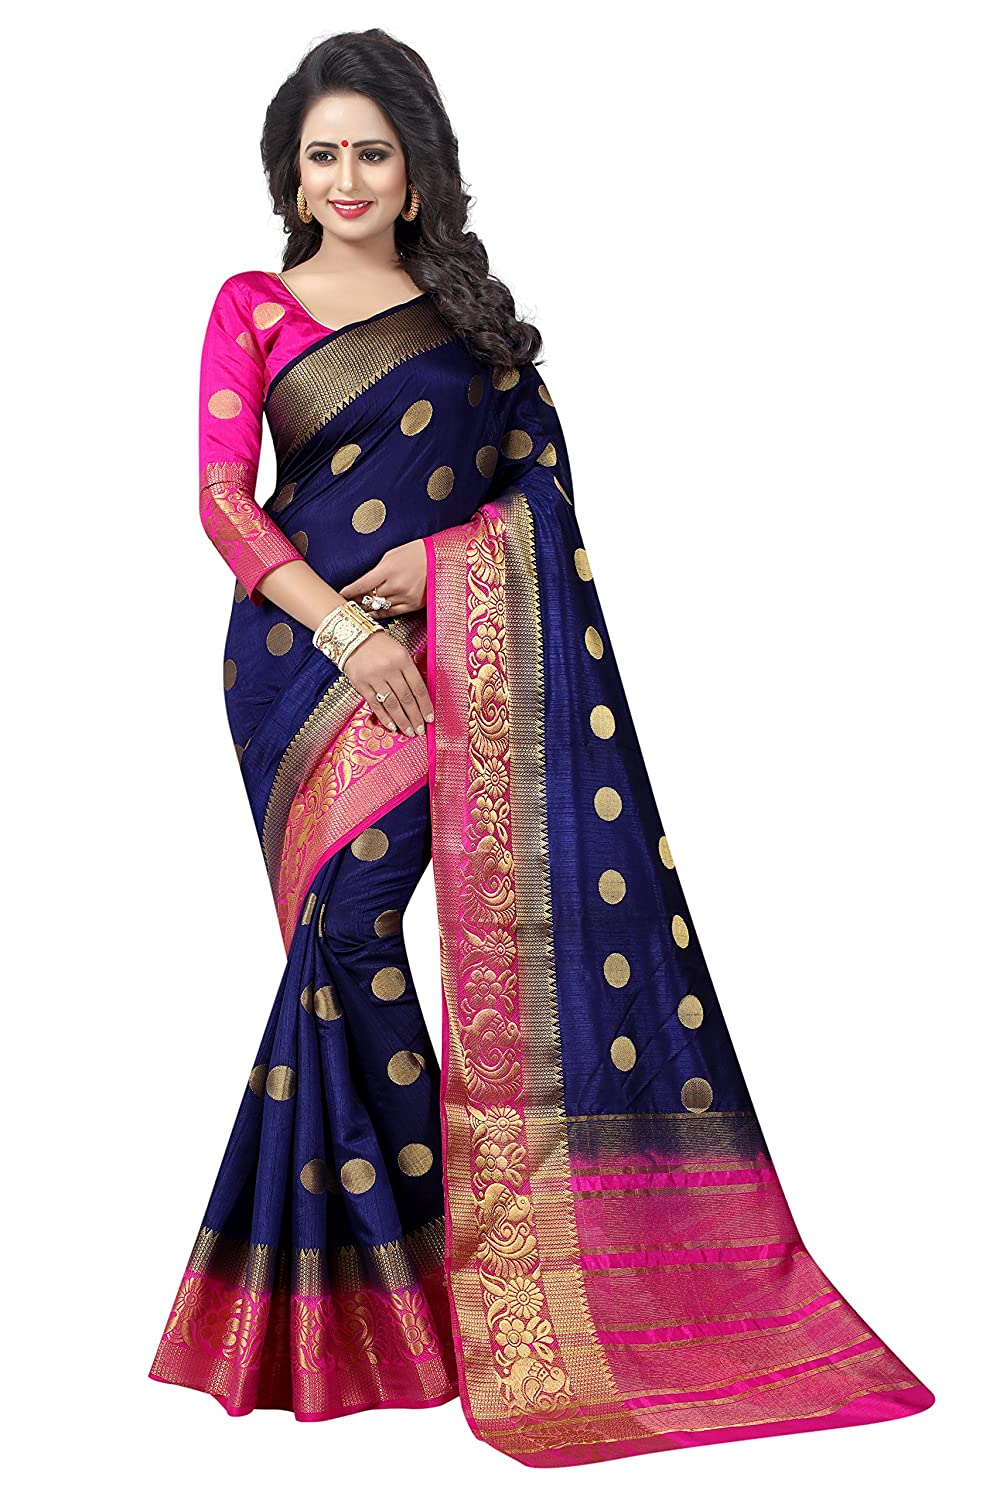 Saarah Women's Kanjivaram Art Silk Saree, Free Size (N3979DB, Dark Blue)